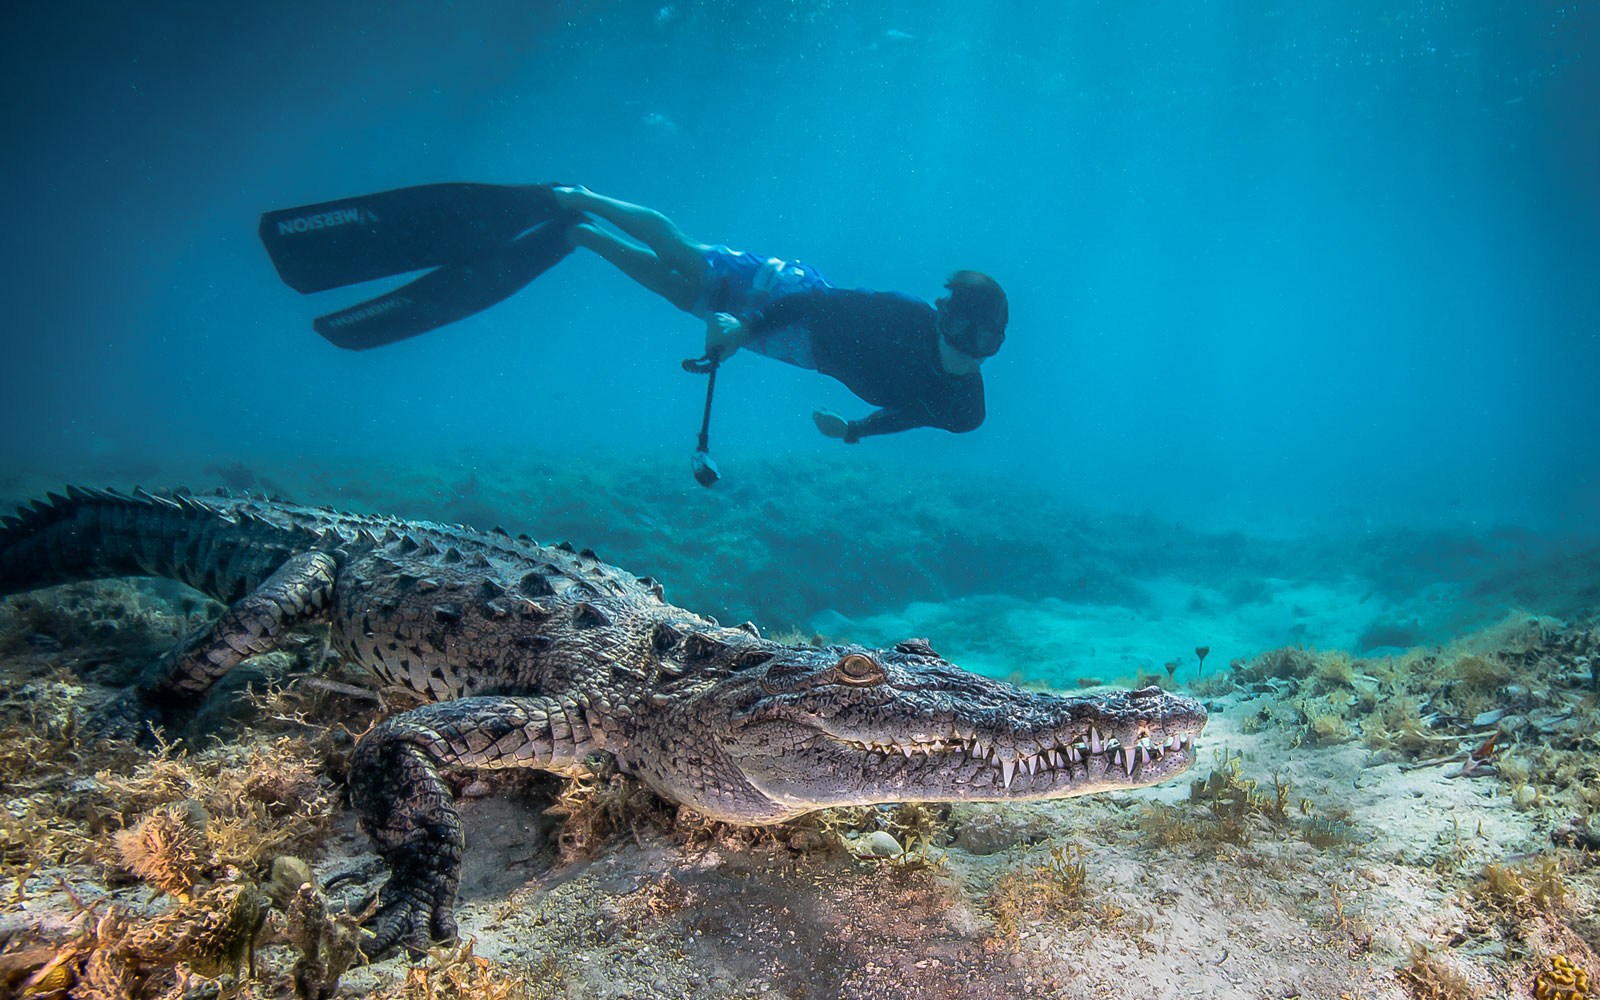 philip-hamilton-son-diving-CROC0417.jpg